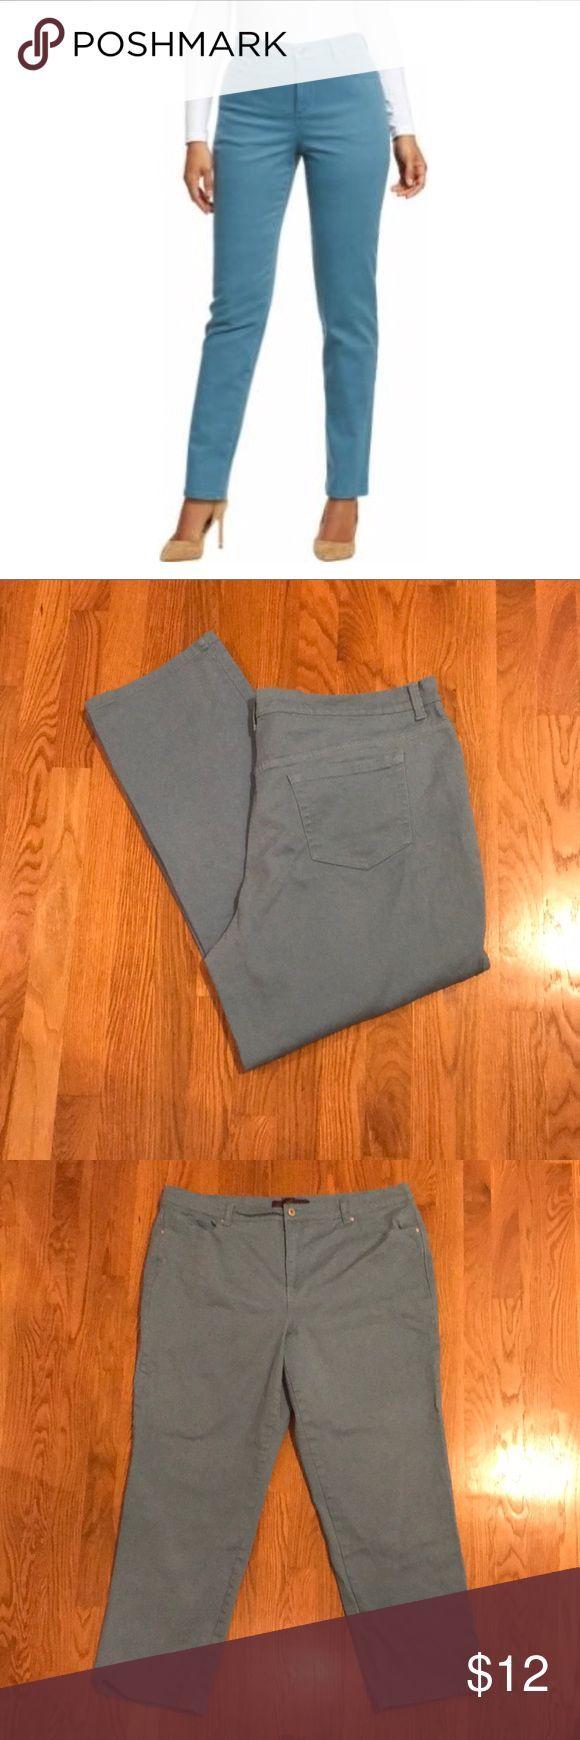 Gloria Vanderbilt Amanda Jeans in Raincloud Blue Size 20W.  Gloria Vanderbilt Jeans in Raincloud Blue!  Cute! Cute! Cute!  Good used condition!  Check them out!  These are 98% cotton and 2% spandex so there is some stretch! Gloria Vanderbilt Jeans